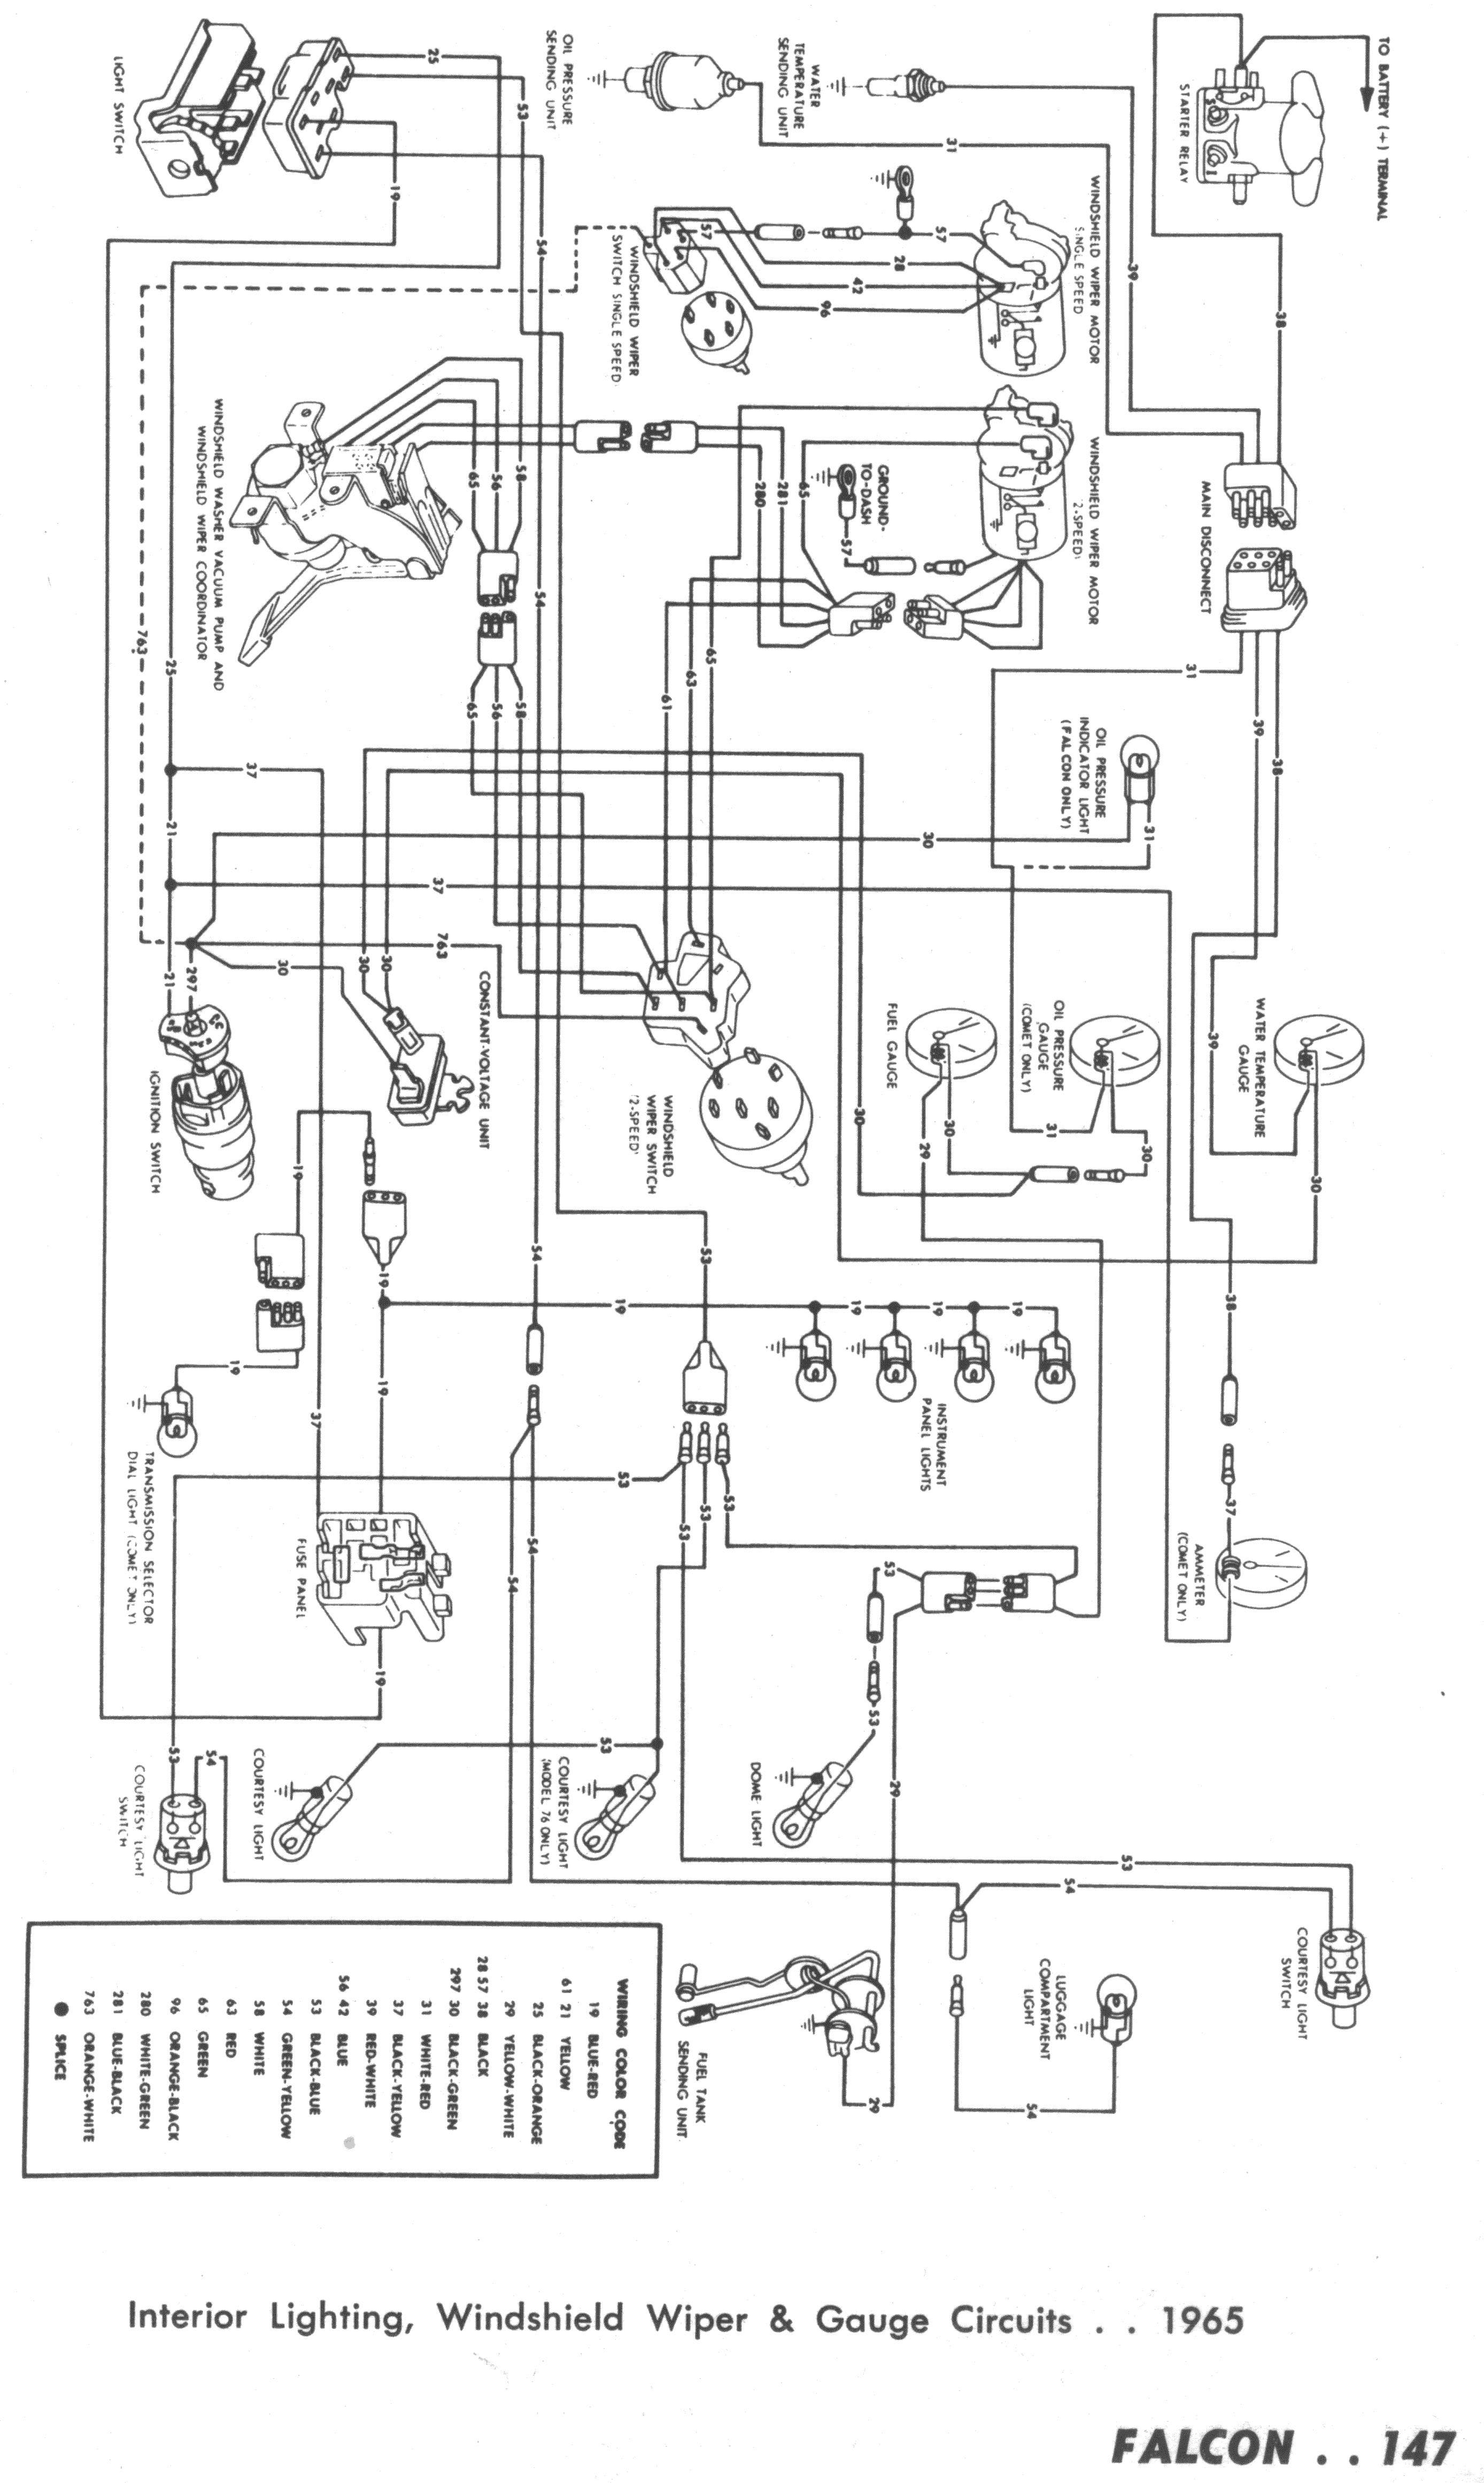 Falcon Wiring Diagrams 1968 Camaro Interior Light Diagram Print Version 730k